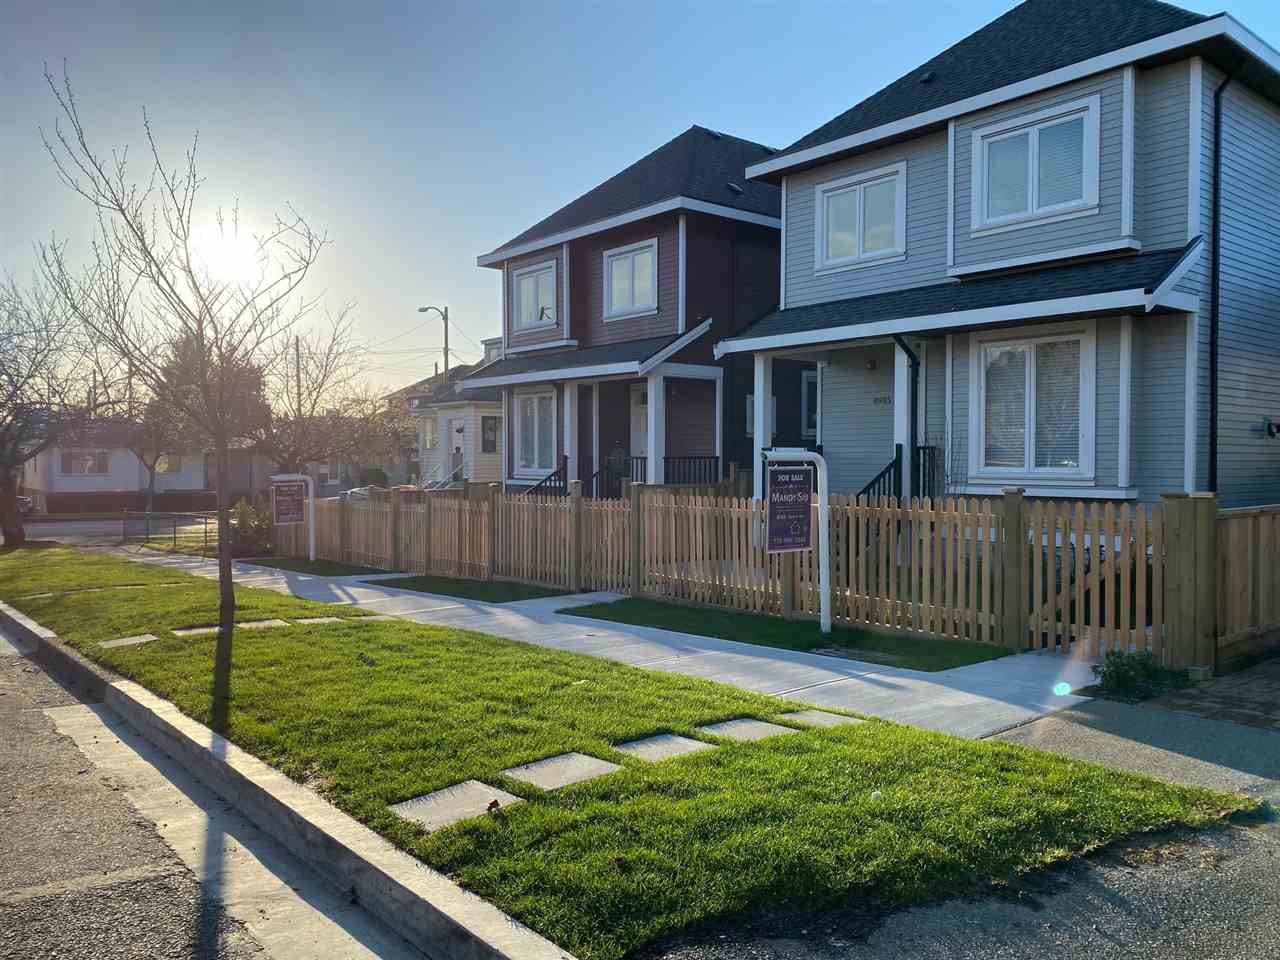 Main Photo: 4987 MOSS Street in Vancouver: Collingwood VE House 1/2 Duplex for sale (Vancouver East)  : MLS®# R2501134